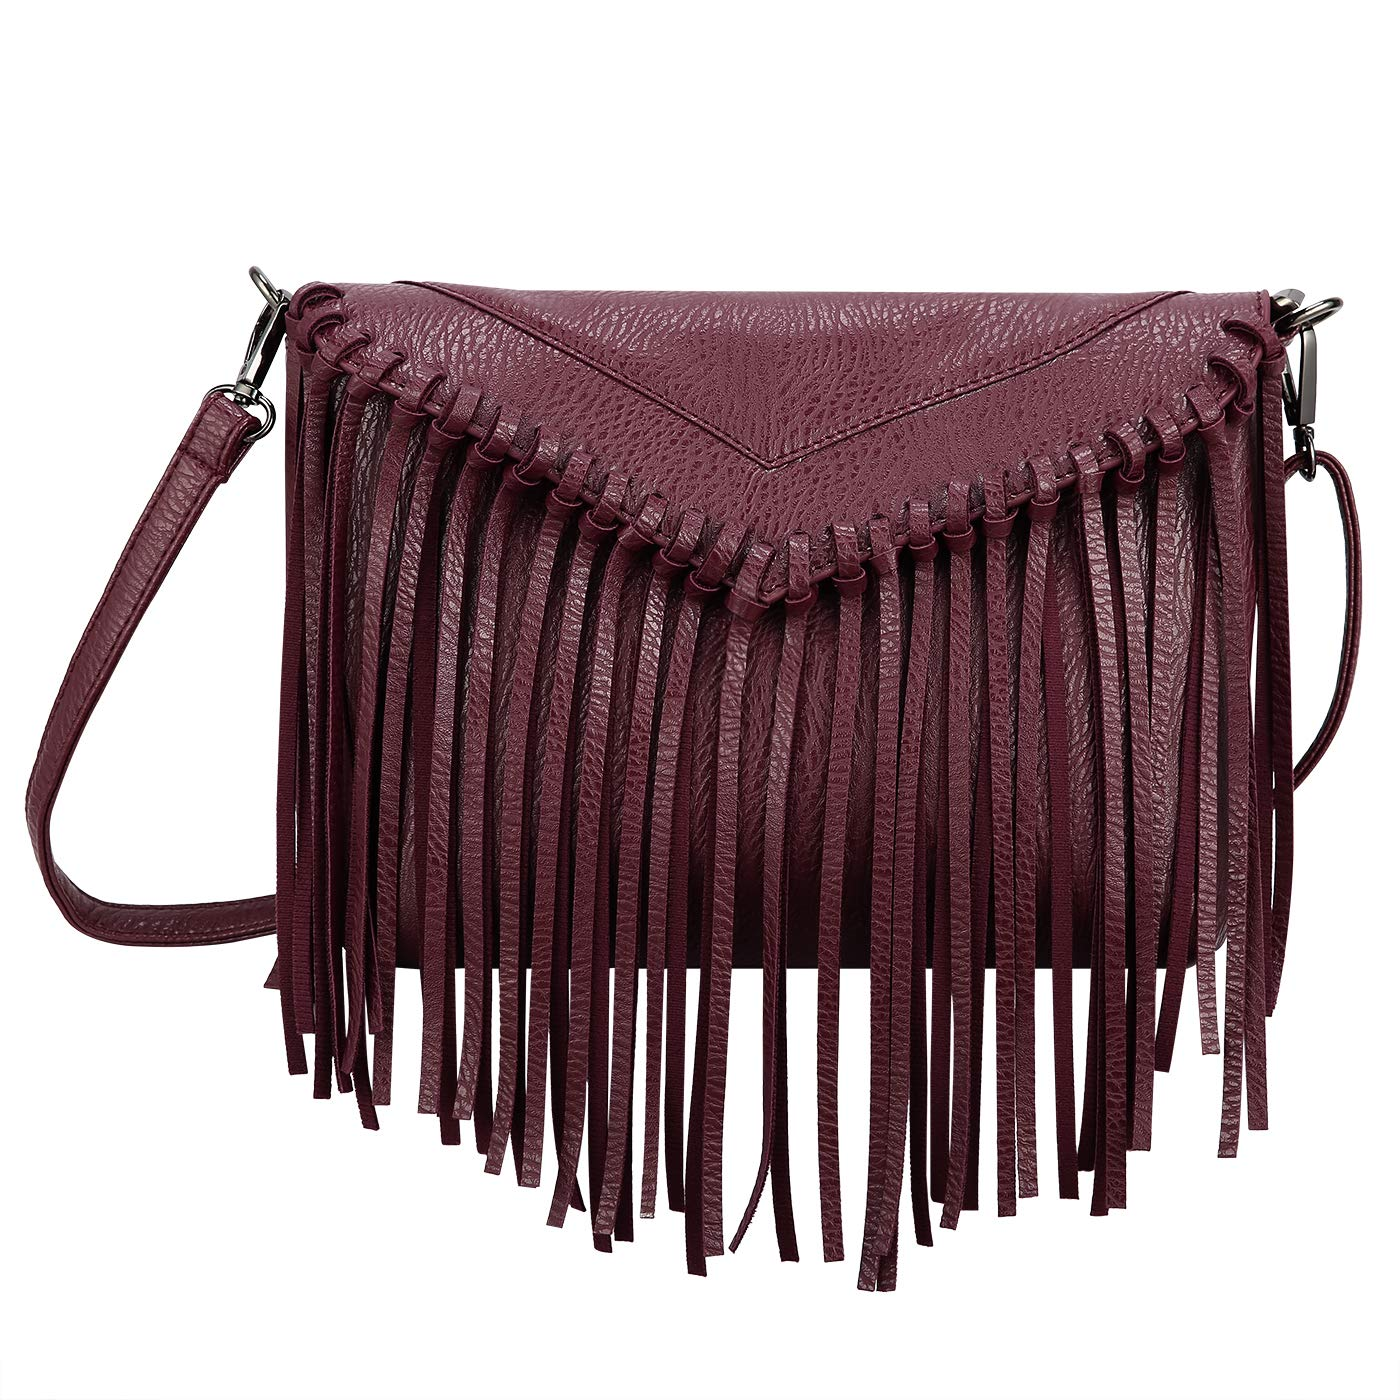 HDE Women's PU Leather Hobo Fringe Crossbody Tassel Purse Vintage Small Handbag by HDE (Image #1)